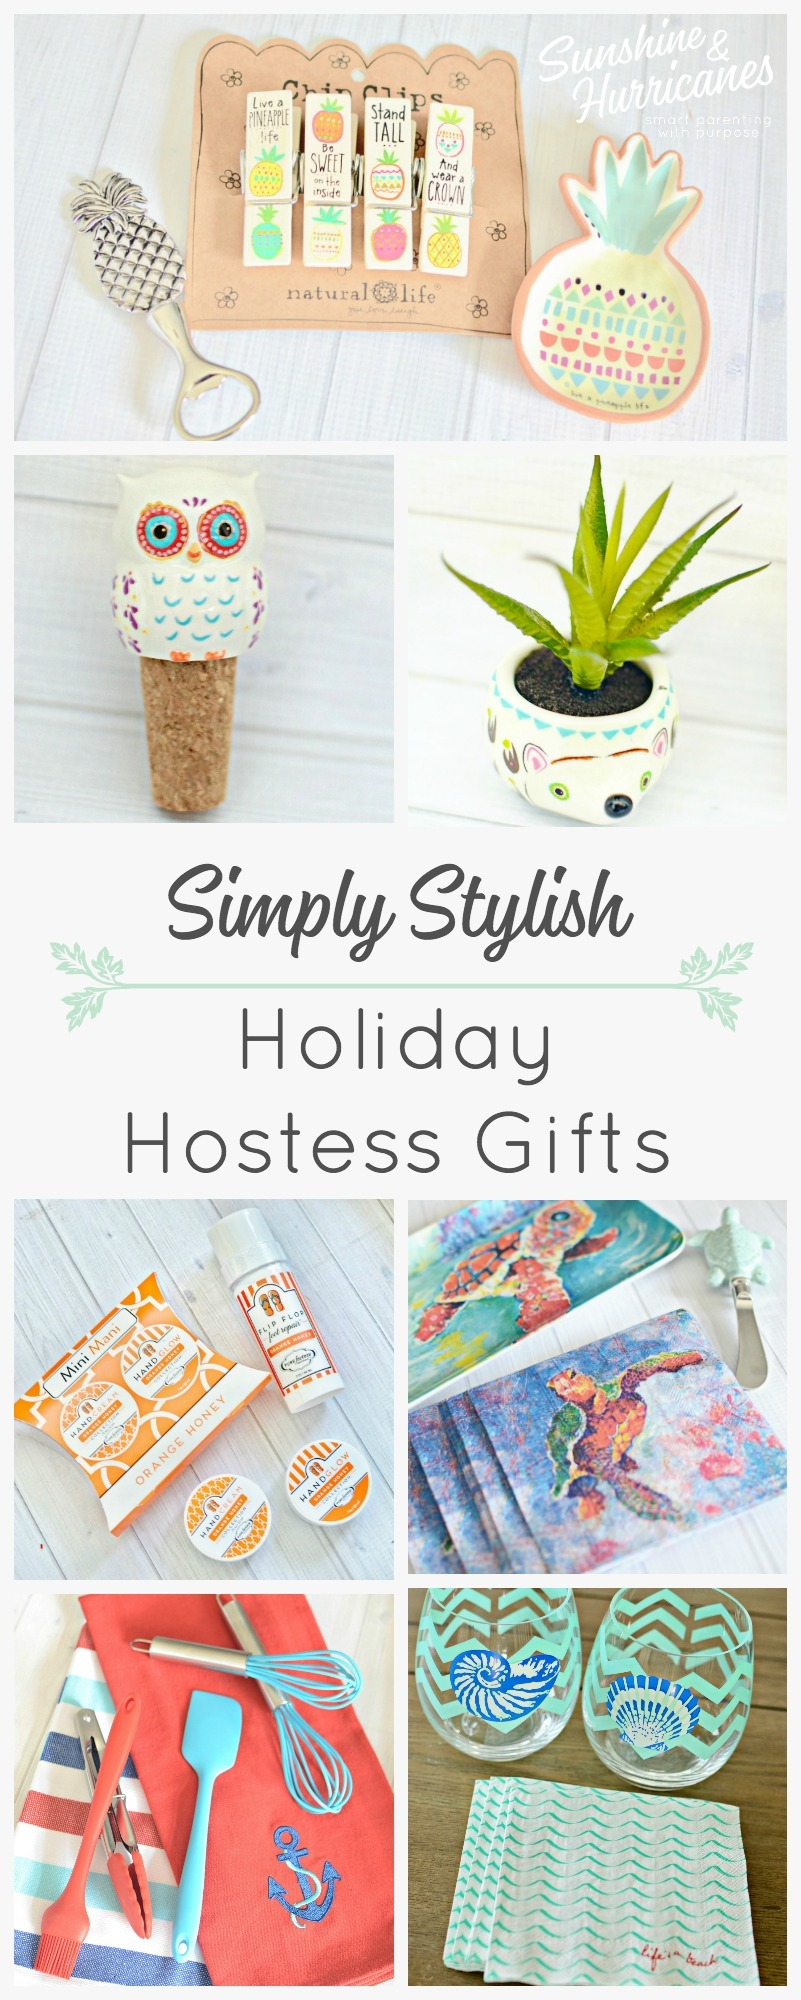 Simply Stylish Holiday Hostess Gifts. Show your gratitude with these unique and thoughtful gifts that are perfect to take to any gathering.